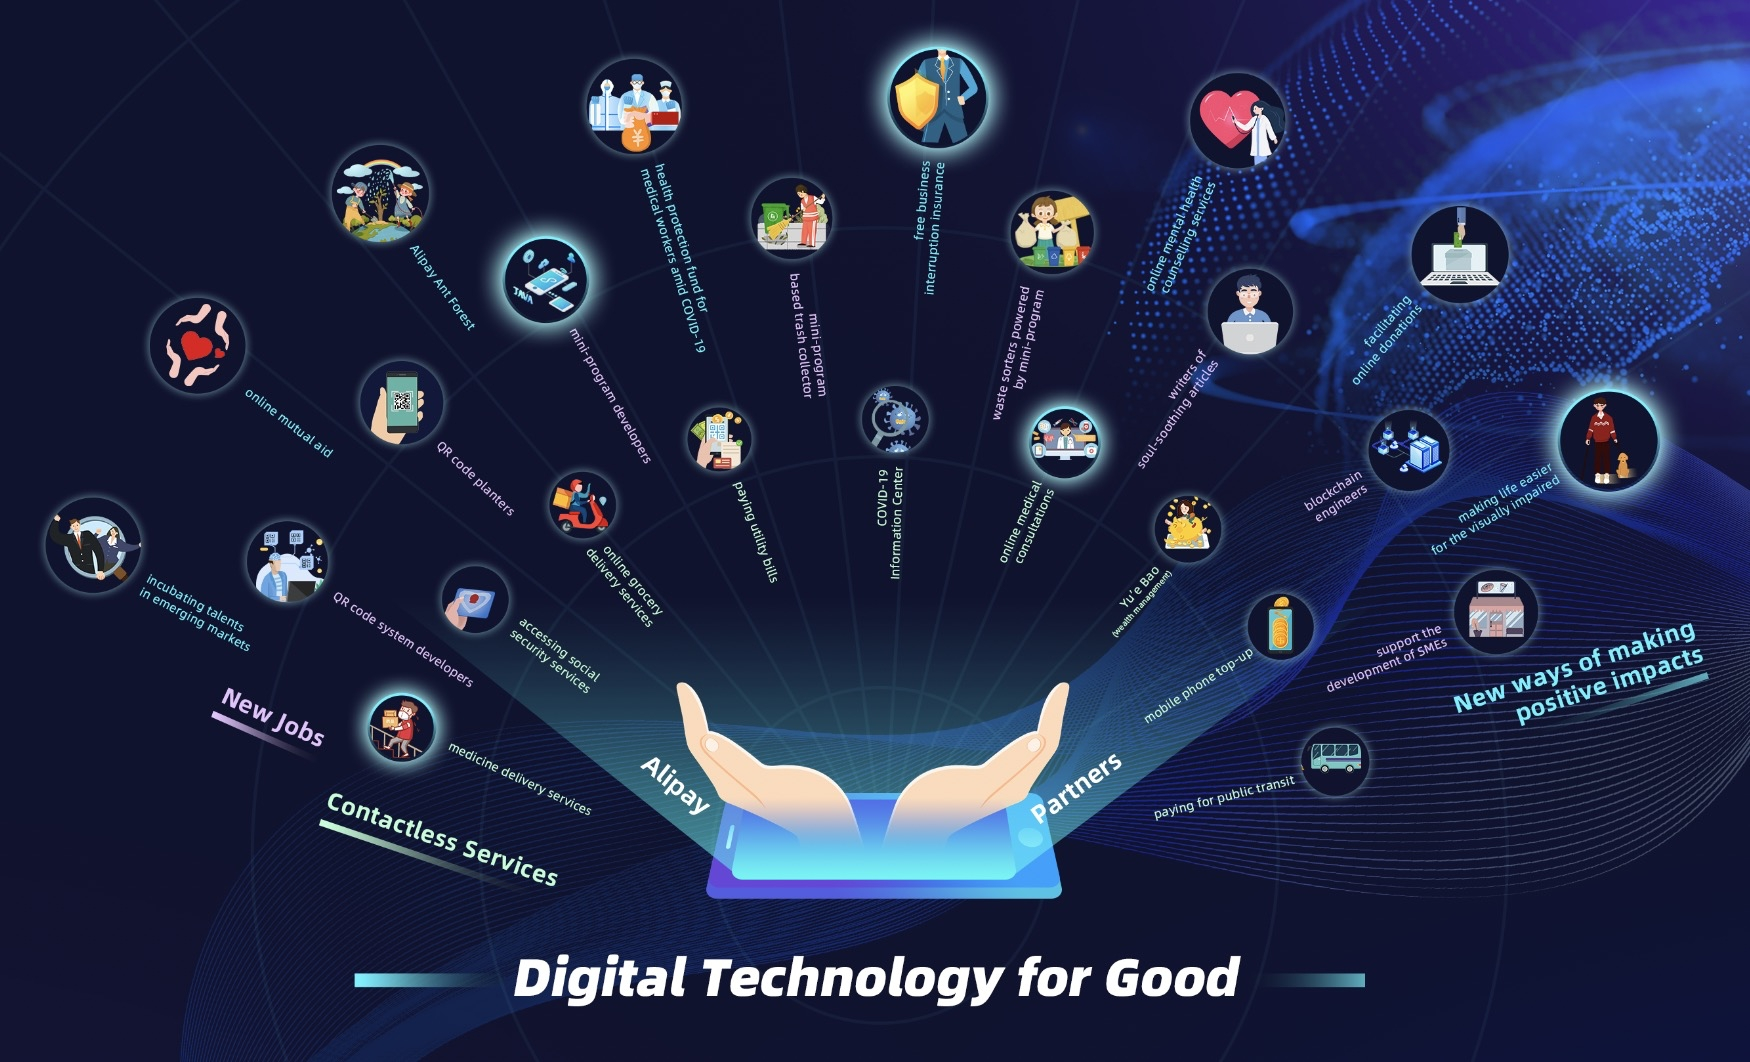 Together_with_its_partners,_Ant_Group_leverages_digital_technology_to_provide_inclusive_services,_empower_consumers_and_businesses,_and_enable_a_digital_life_accessible_to_all